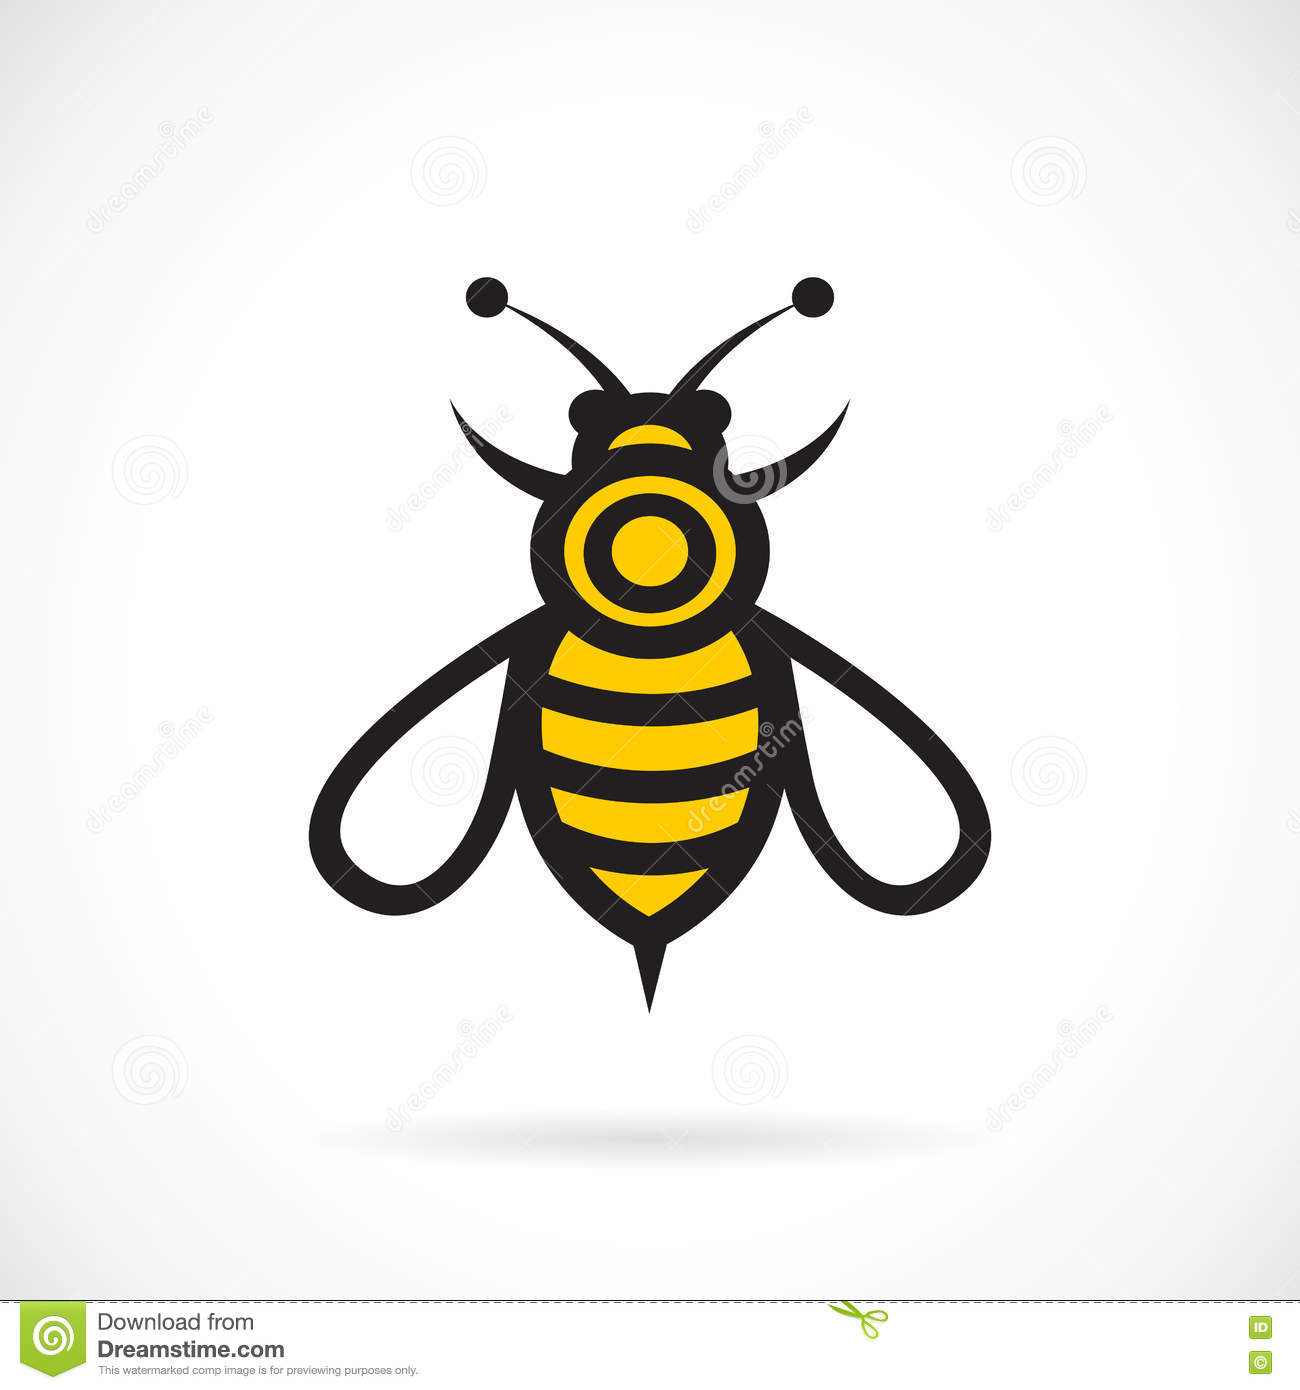 Vector image of an bee design.